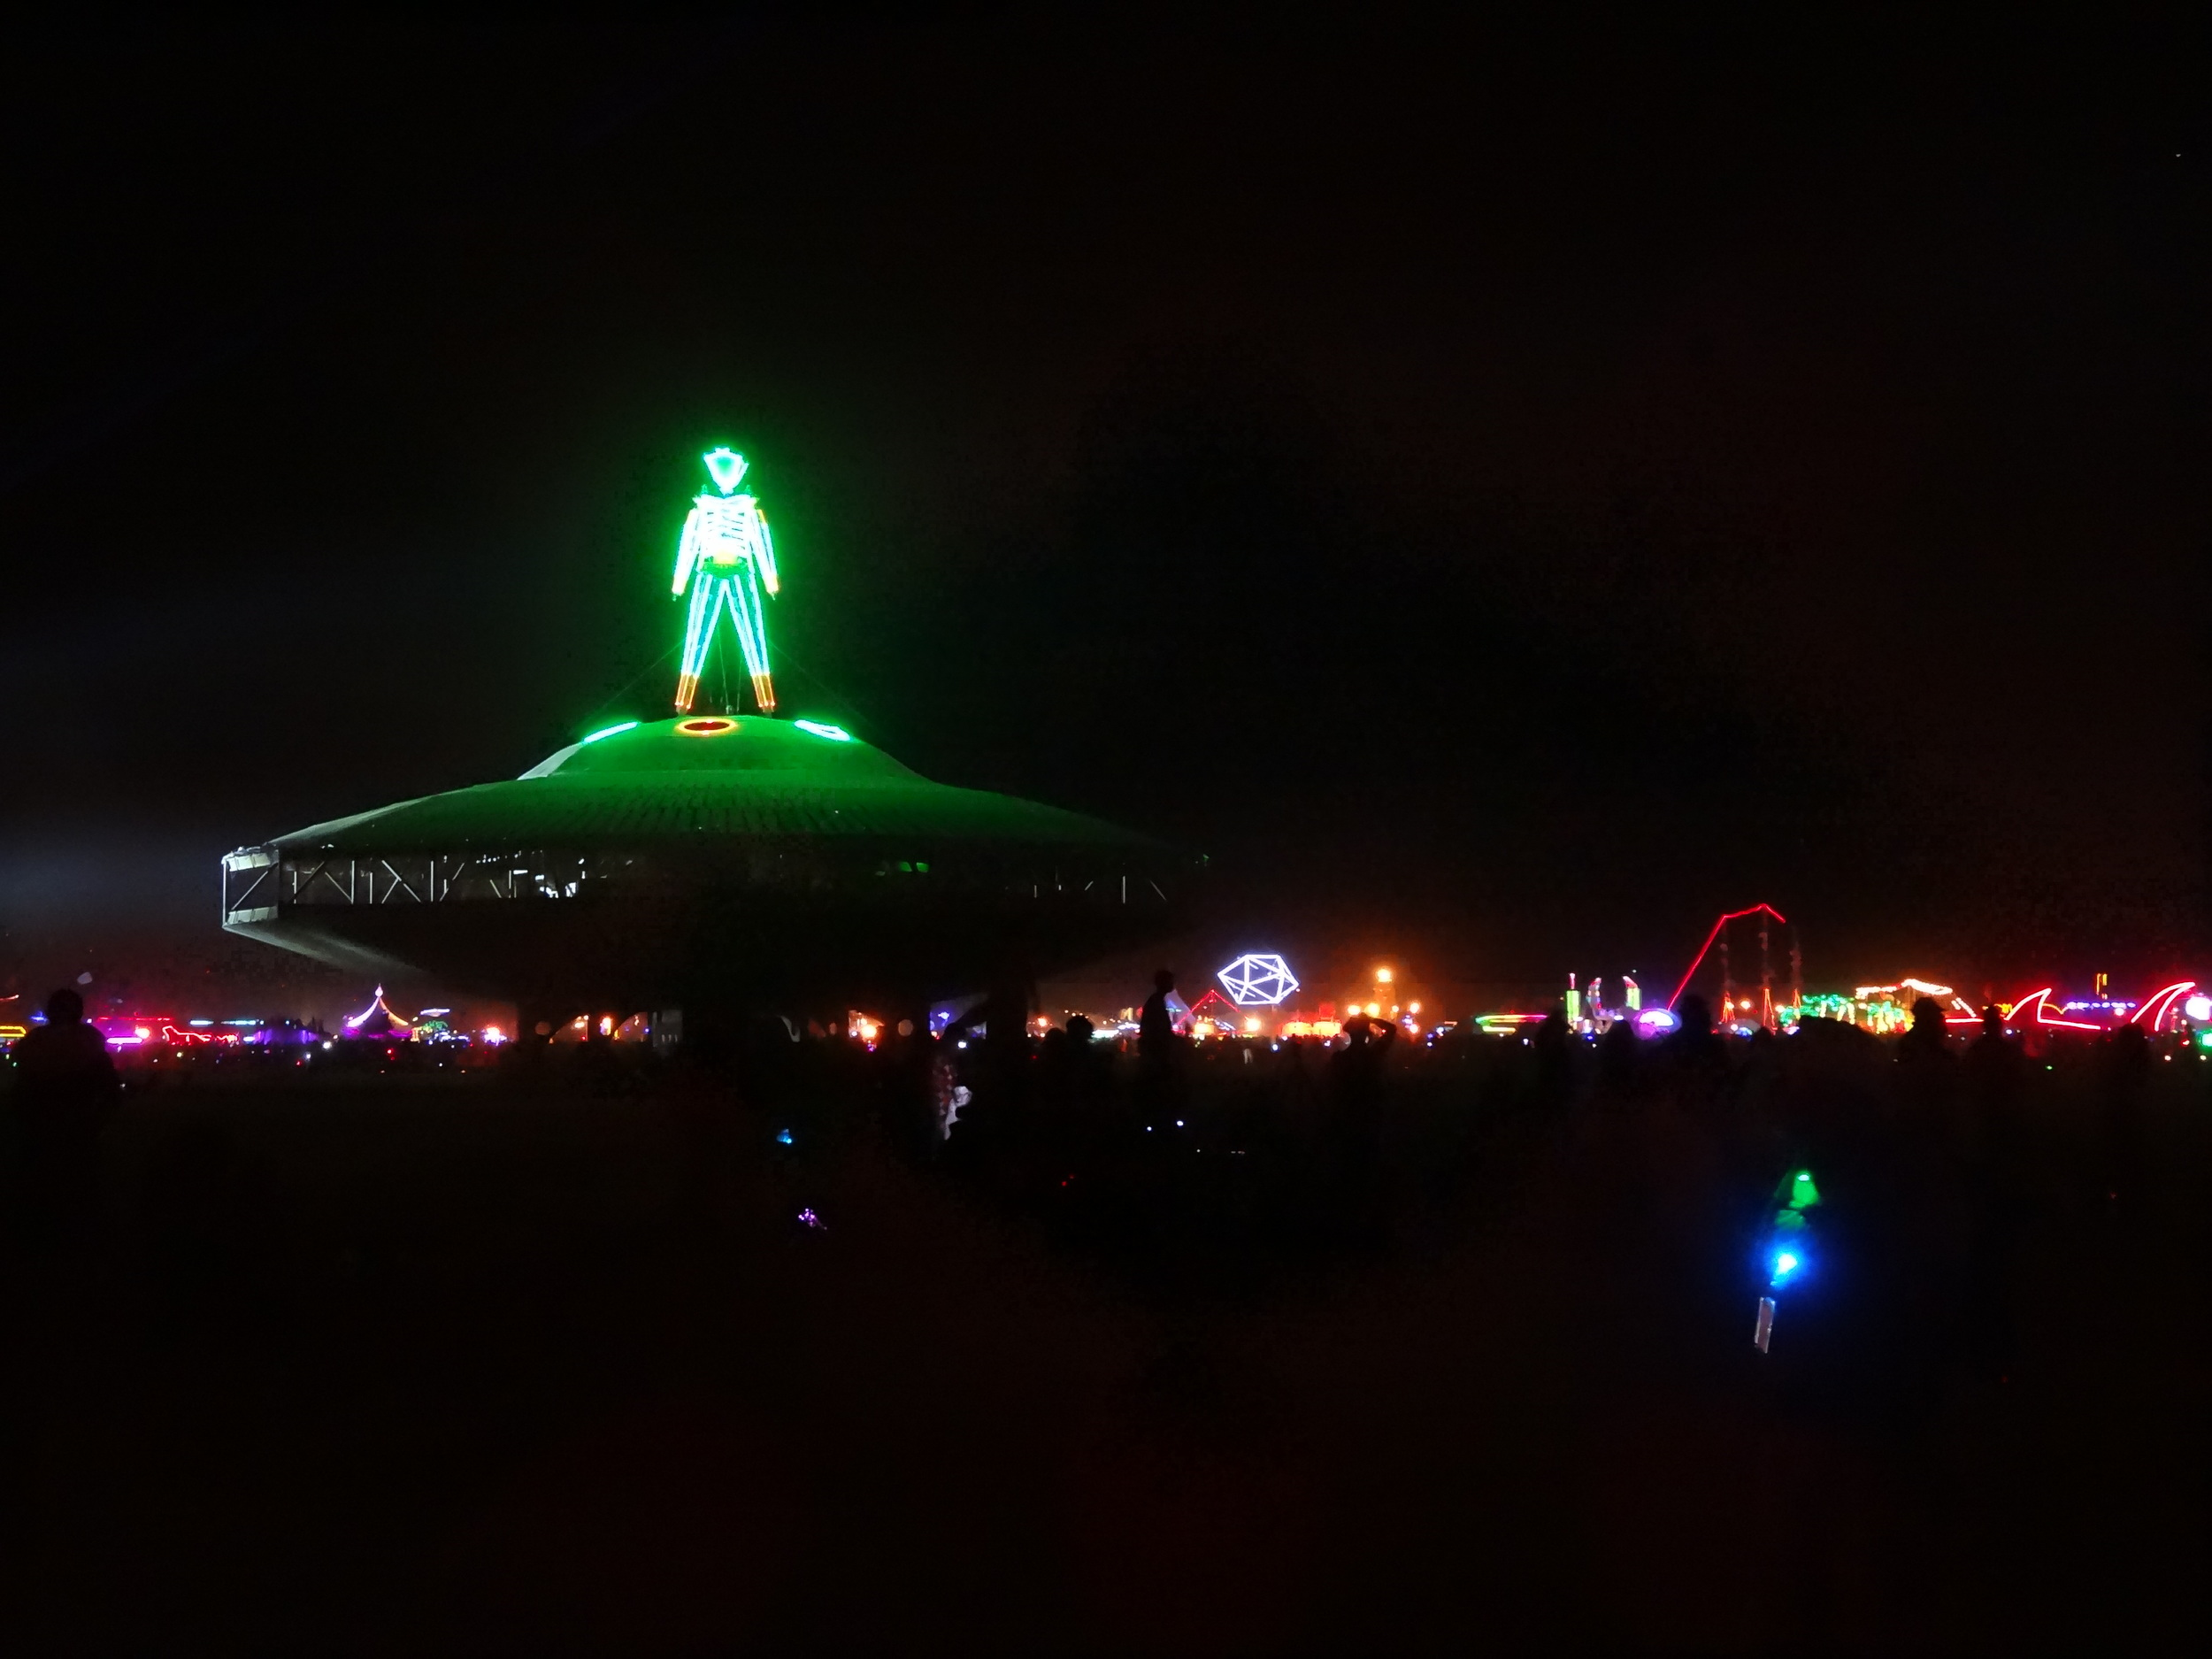 The Man stands proudly atop his pedestal on Saturday night.  The ring of camps is always a glowing spectacle in the dark of night.